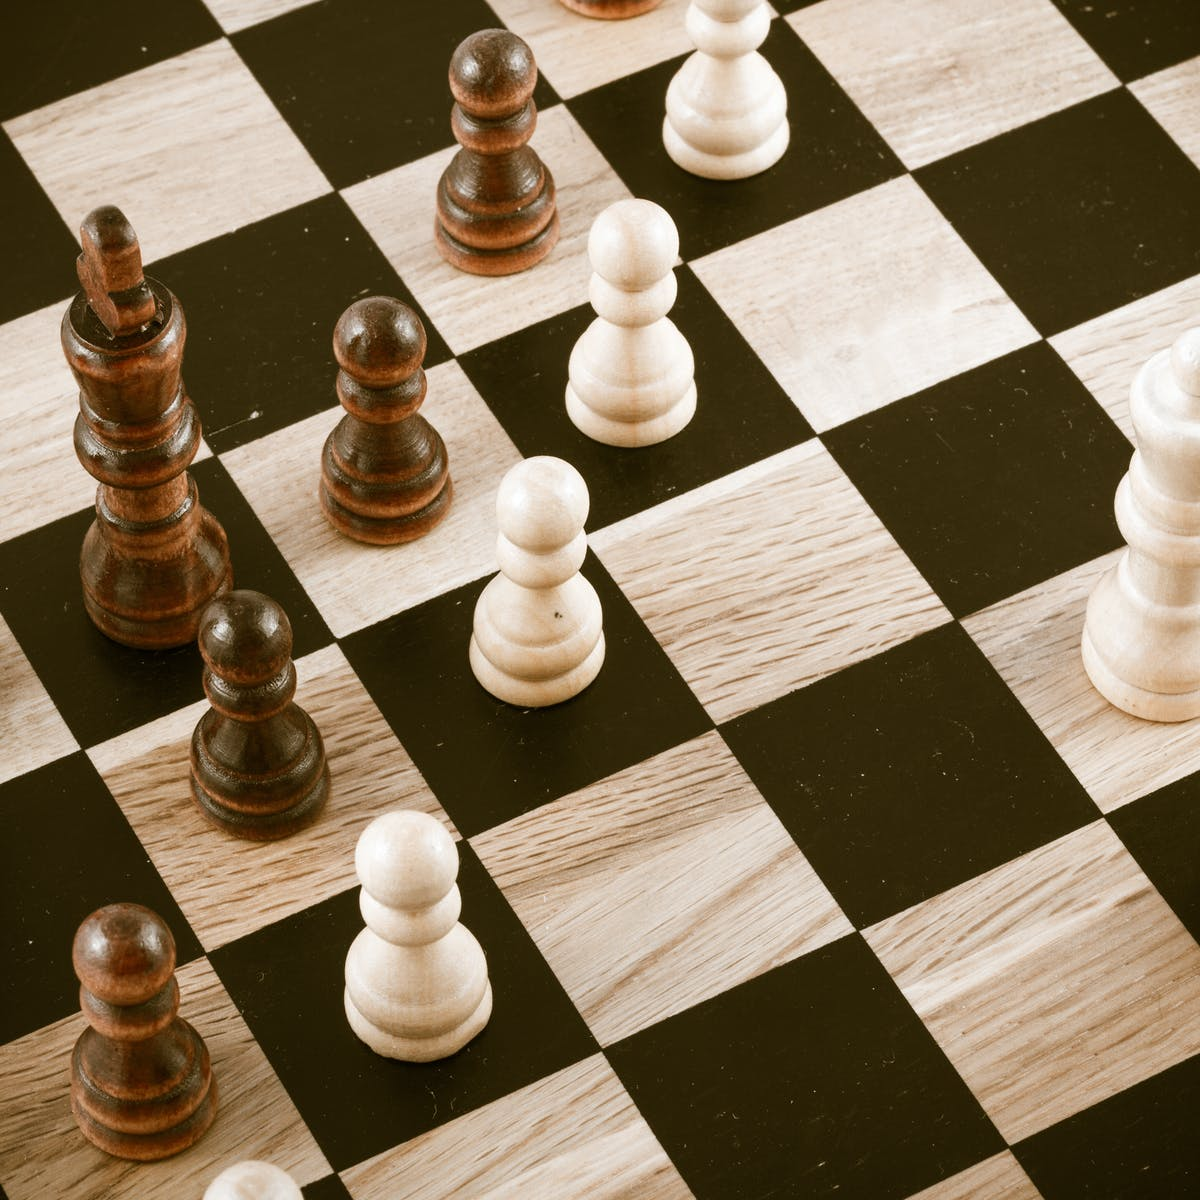 Does playing chess make you smarter? A look at the evidence